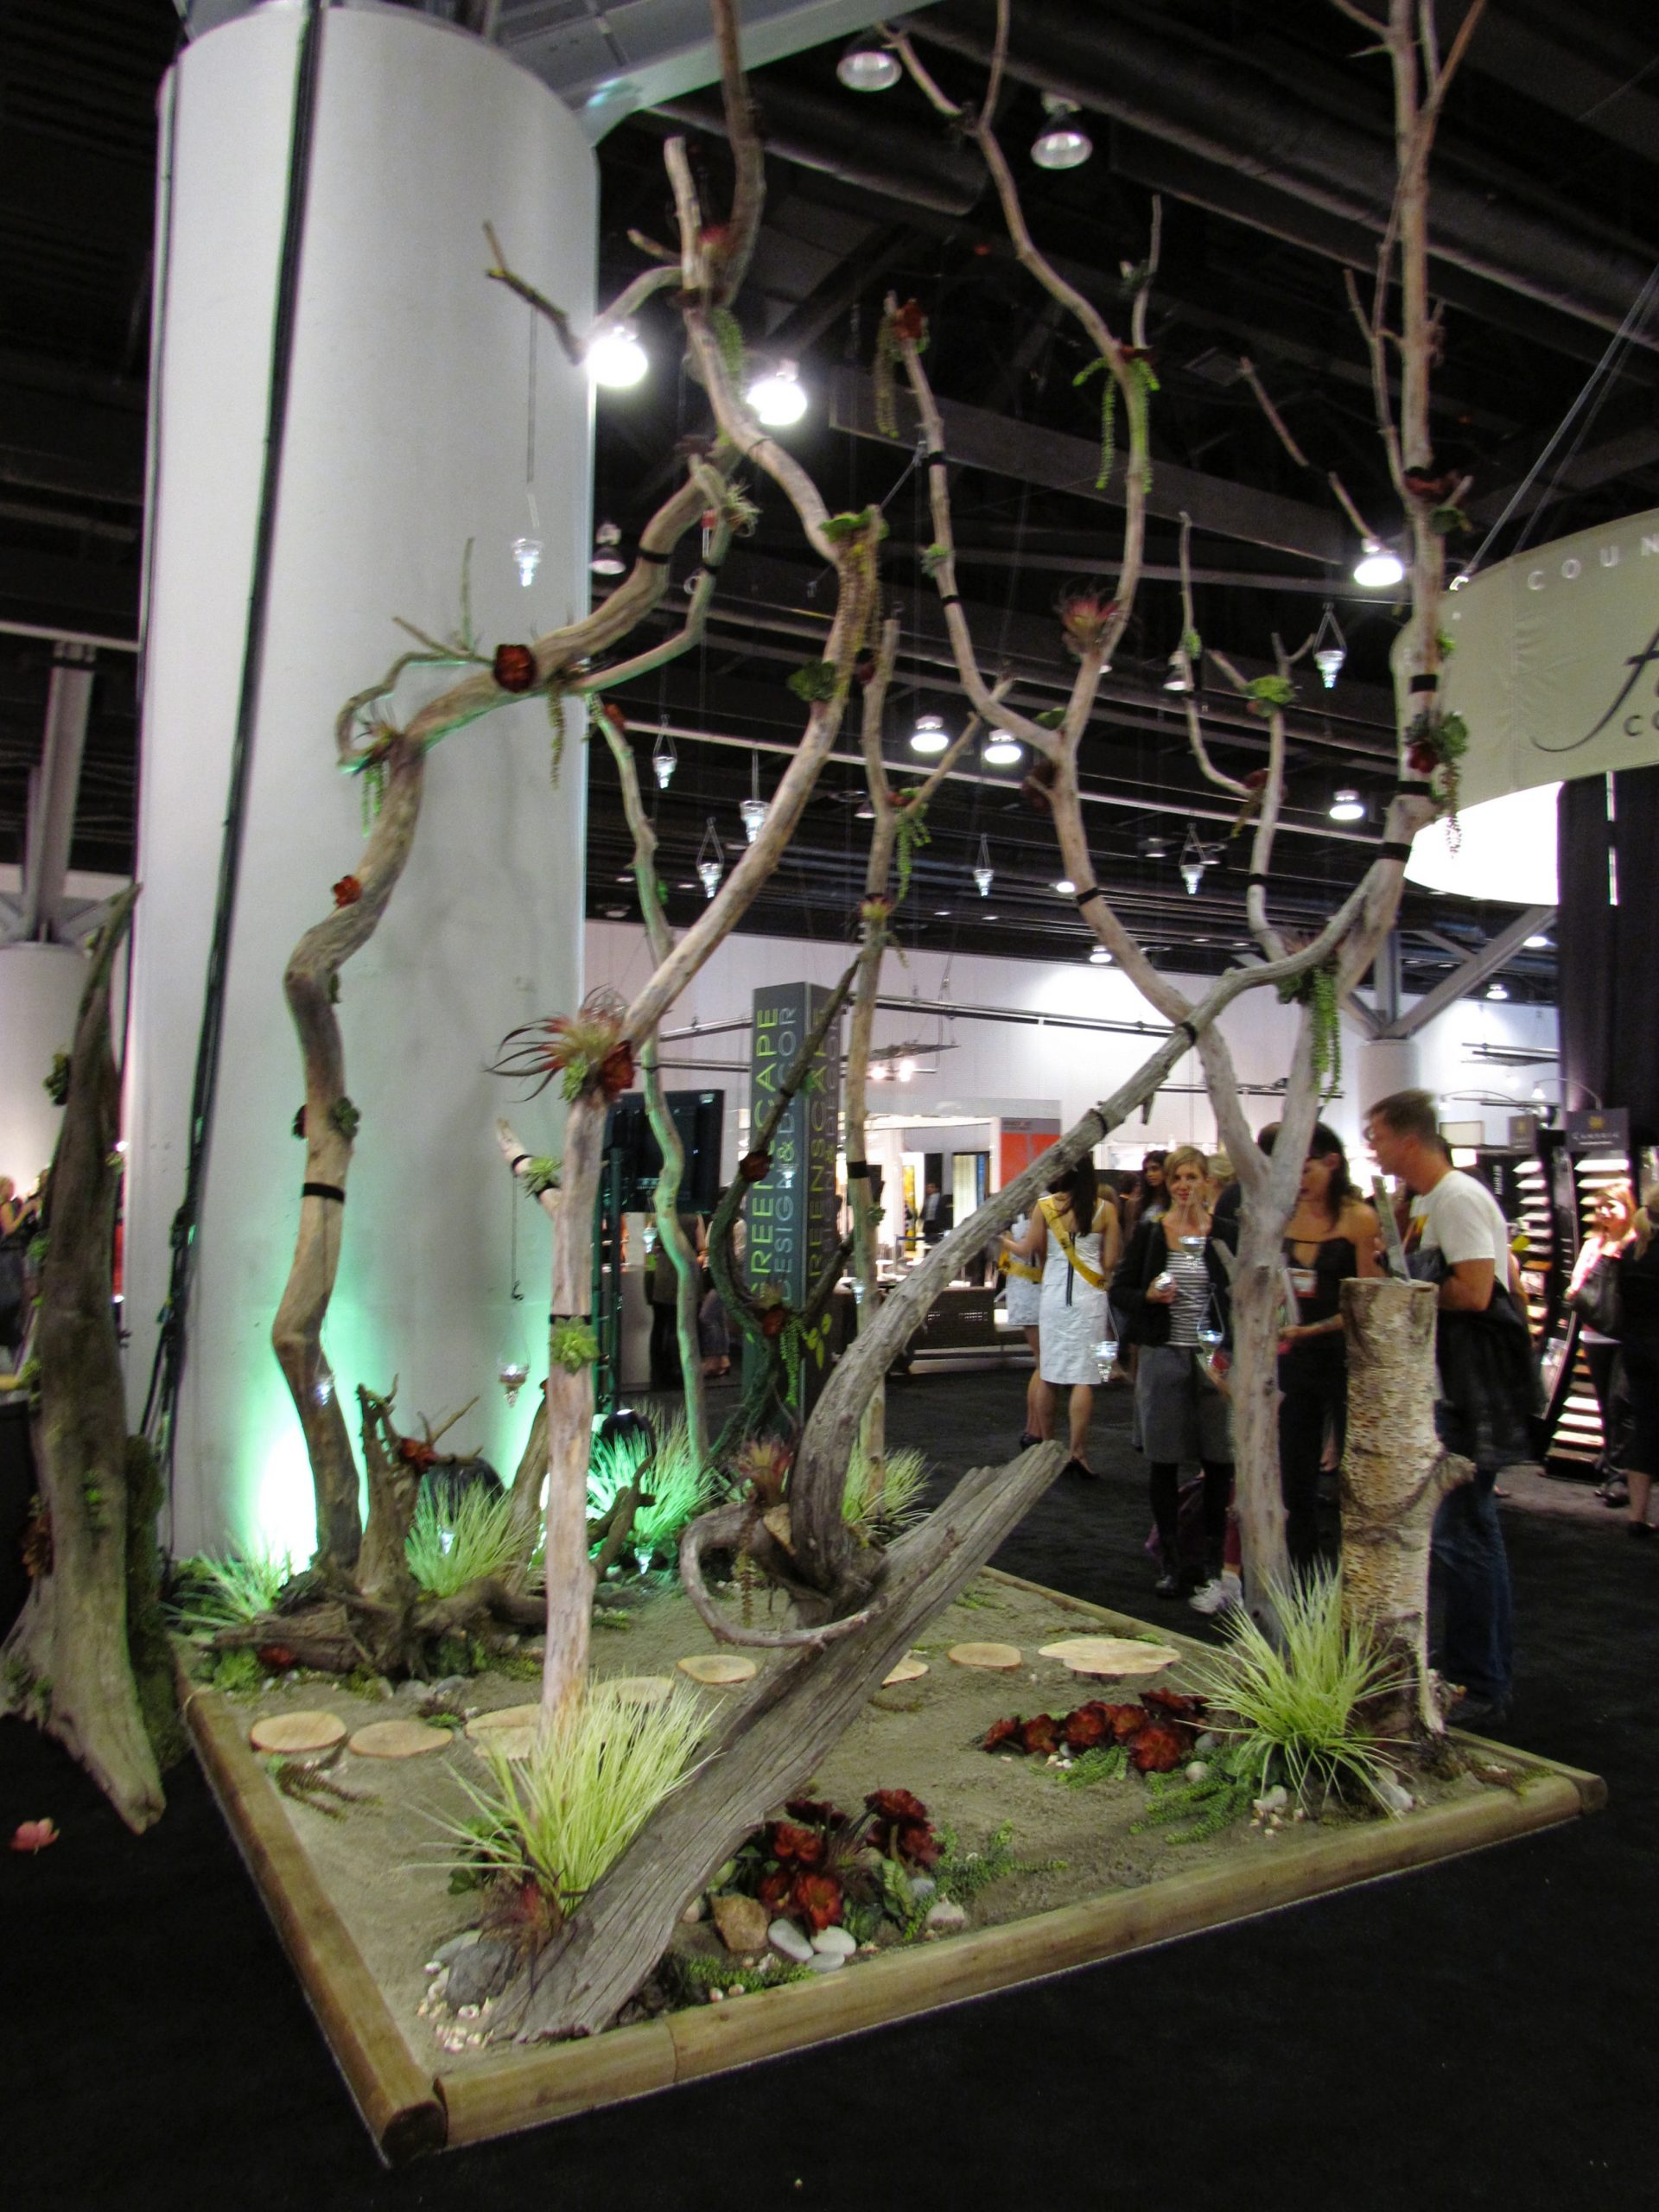 Driftwood sculpture with artificial grass and sand pit for IDS tradeshow